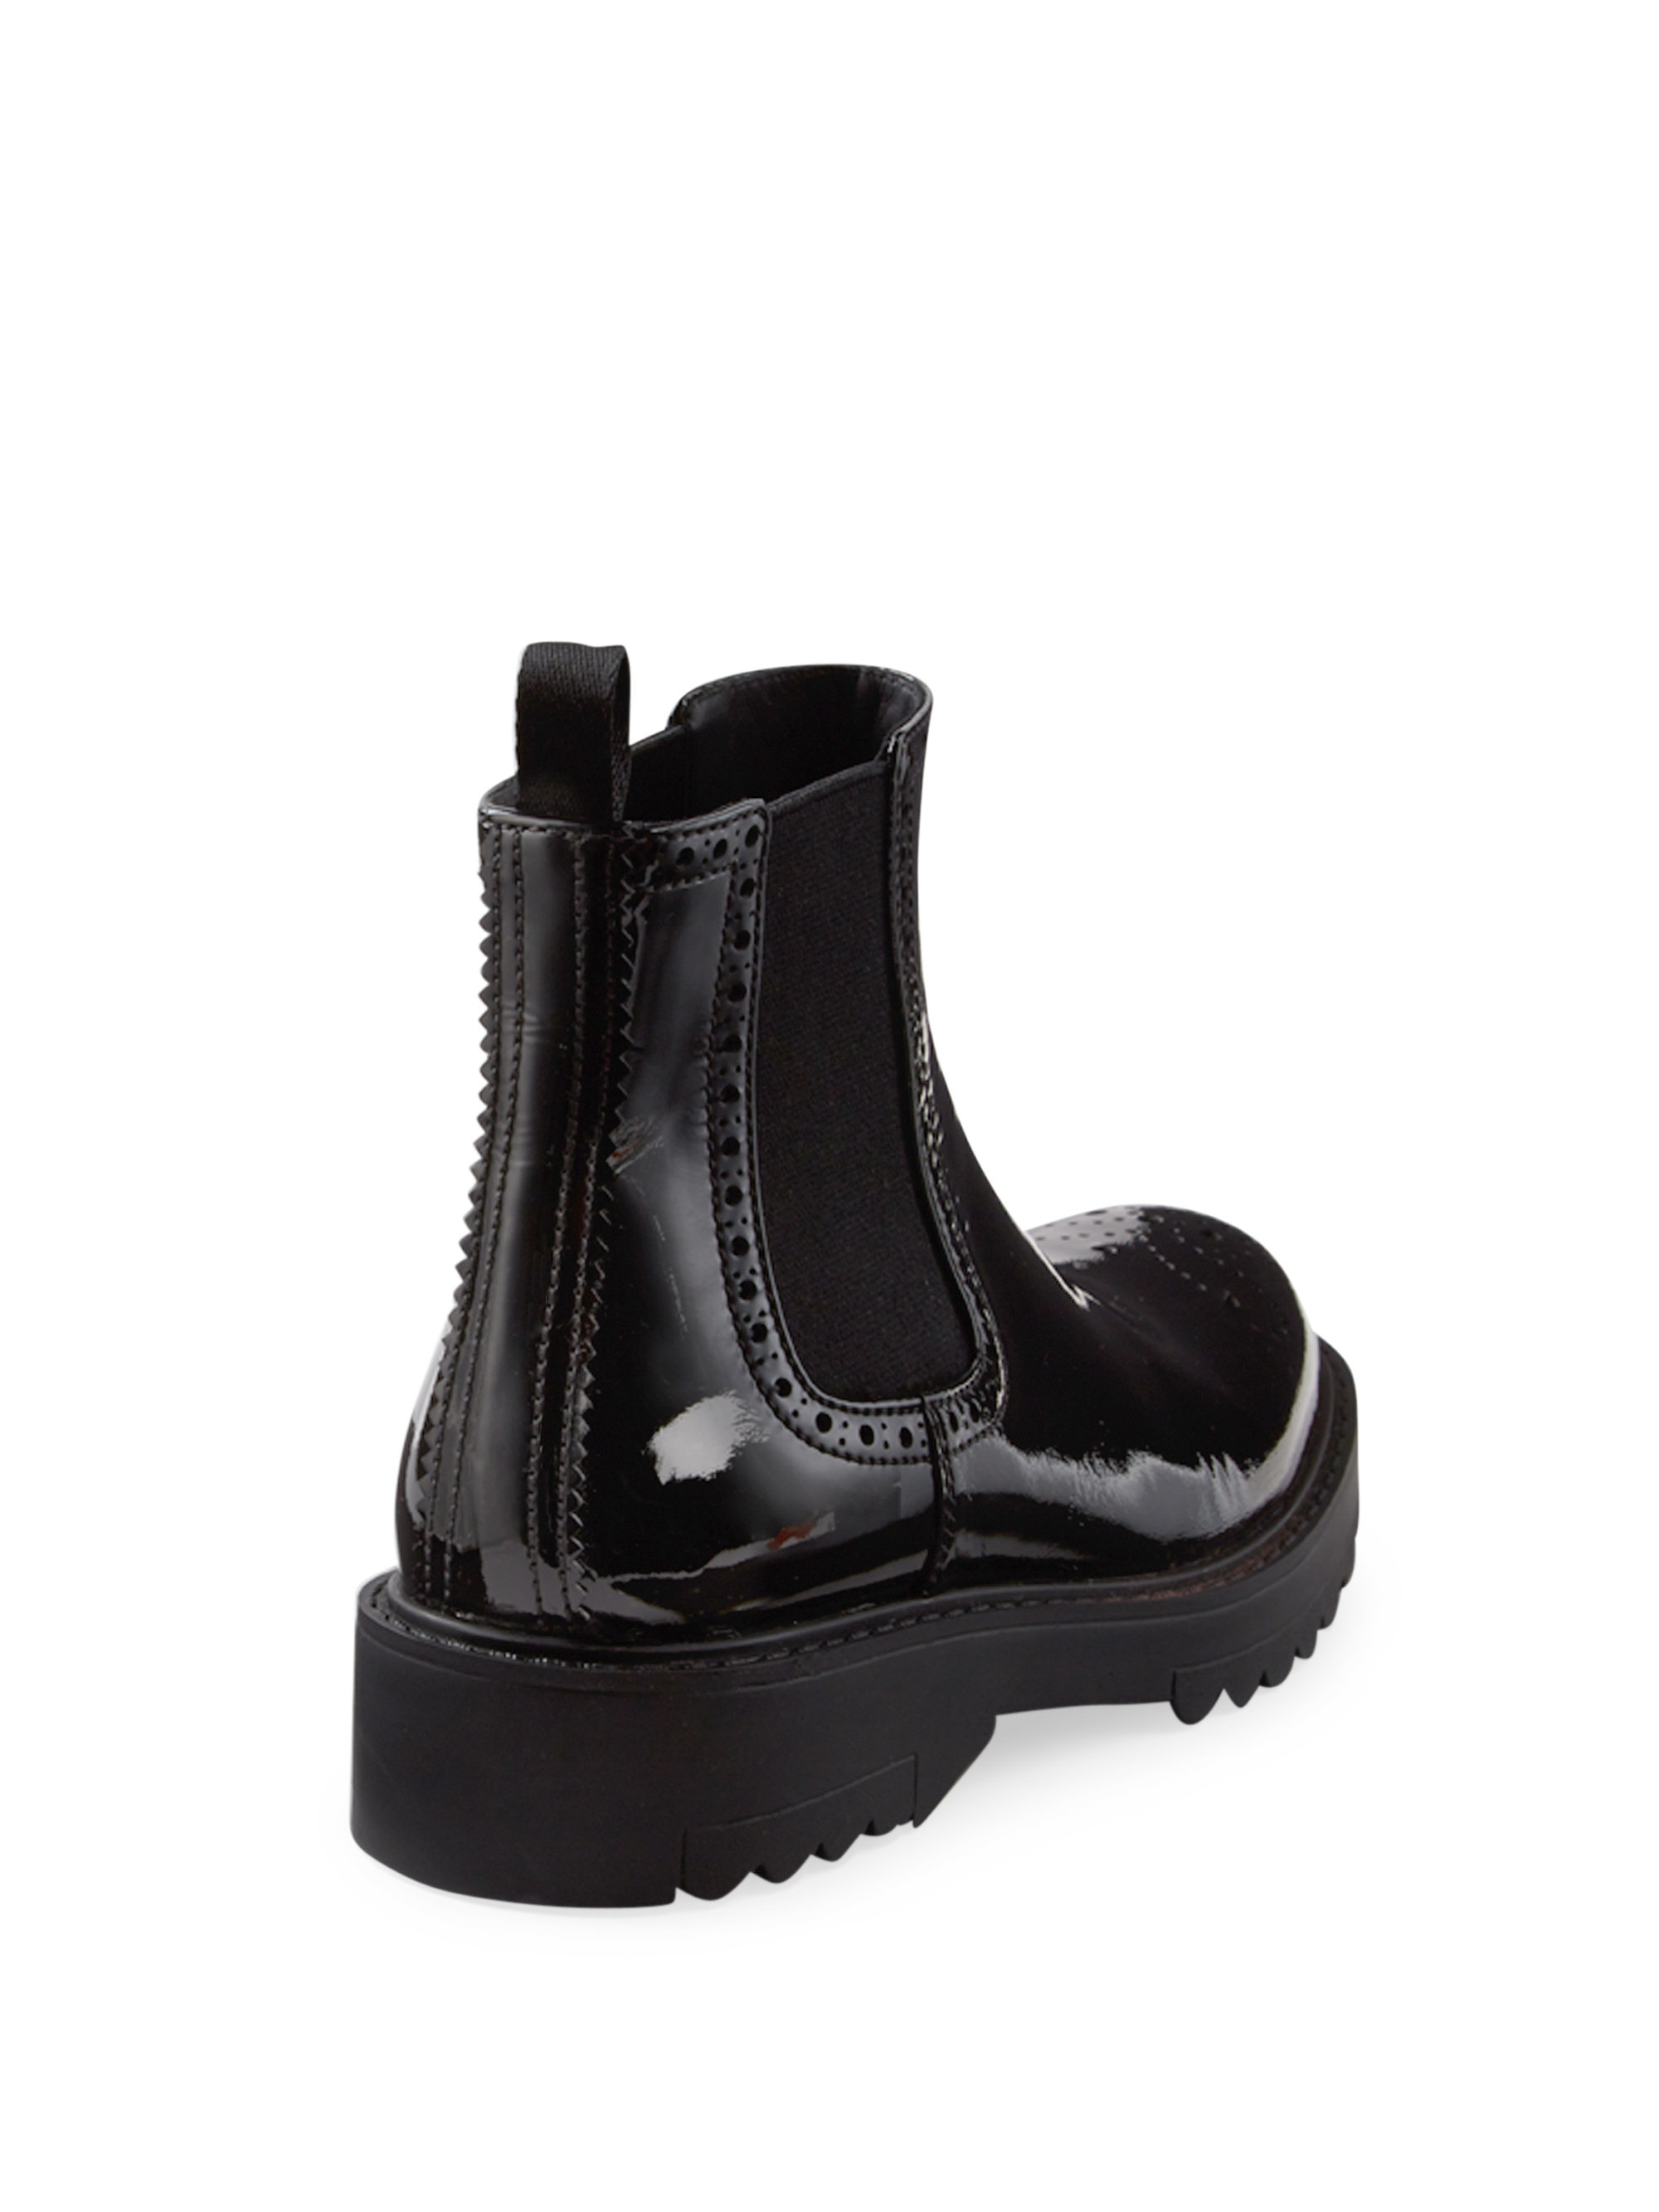 prada patent leather brogue chelsea boots in black lyst